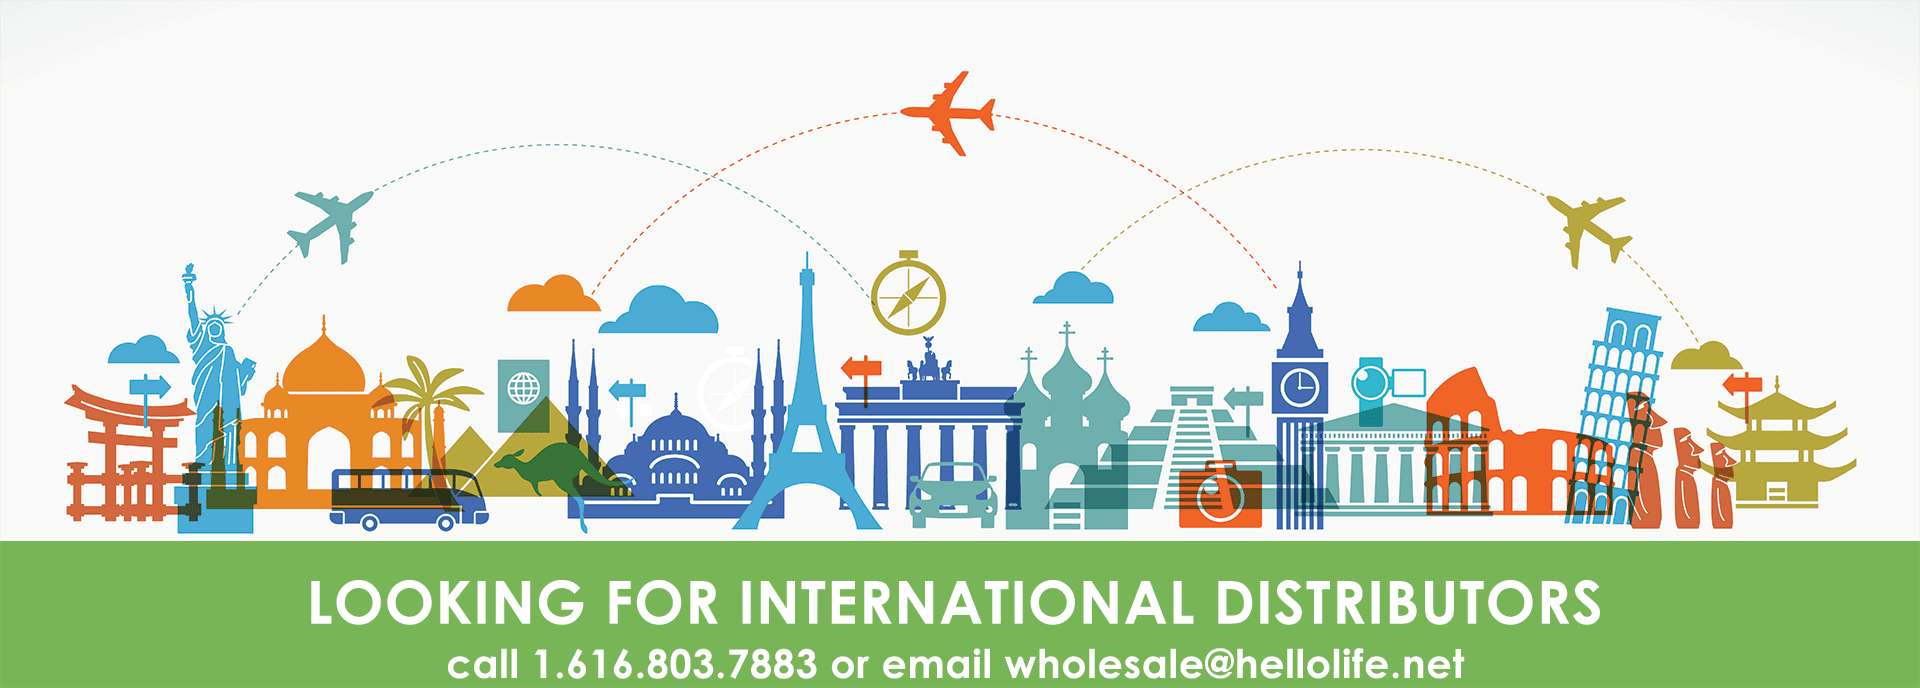 HelloLife is looking for international distributors - call 1.616.803.7883 or email wholesale@hellolife.net